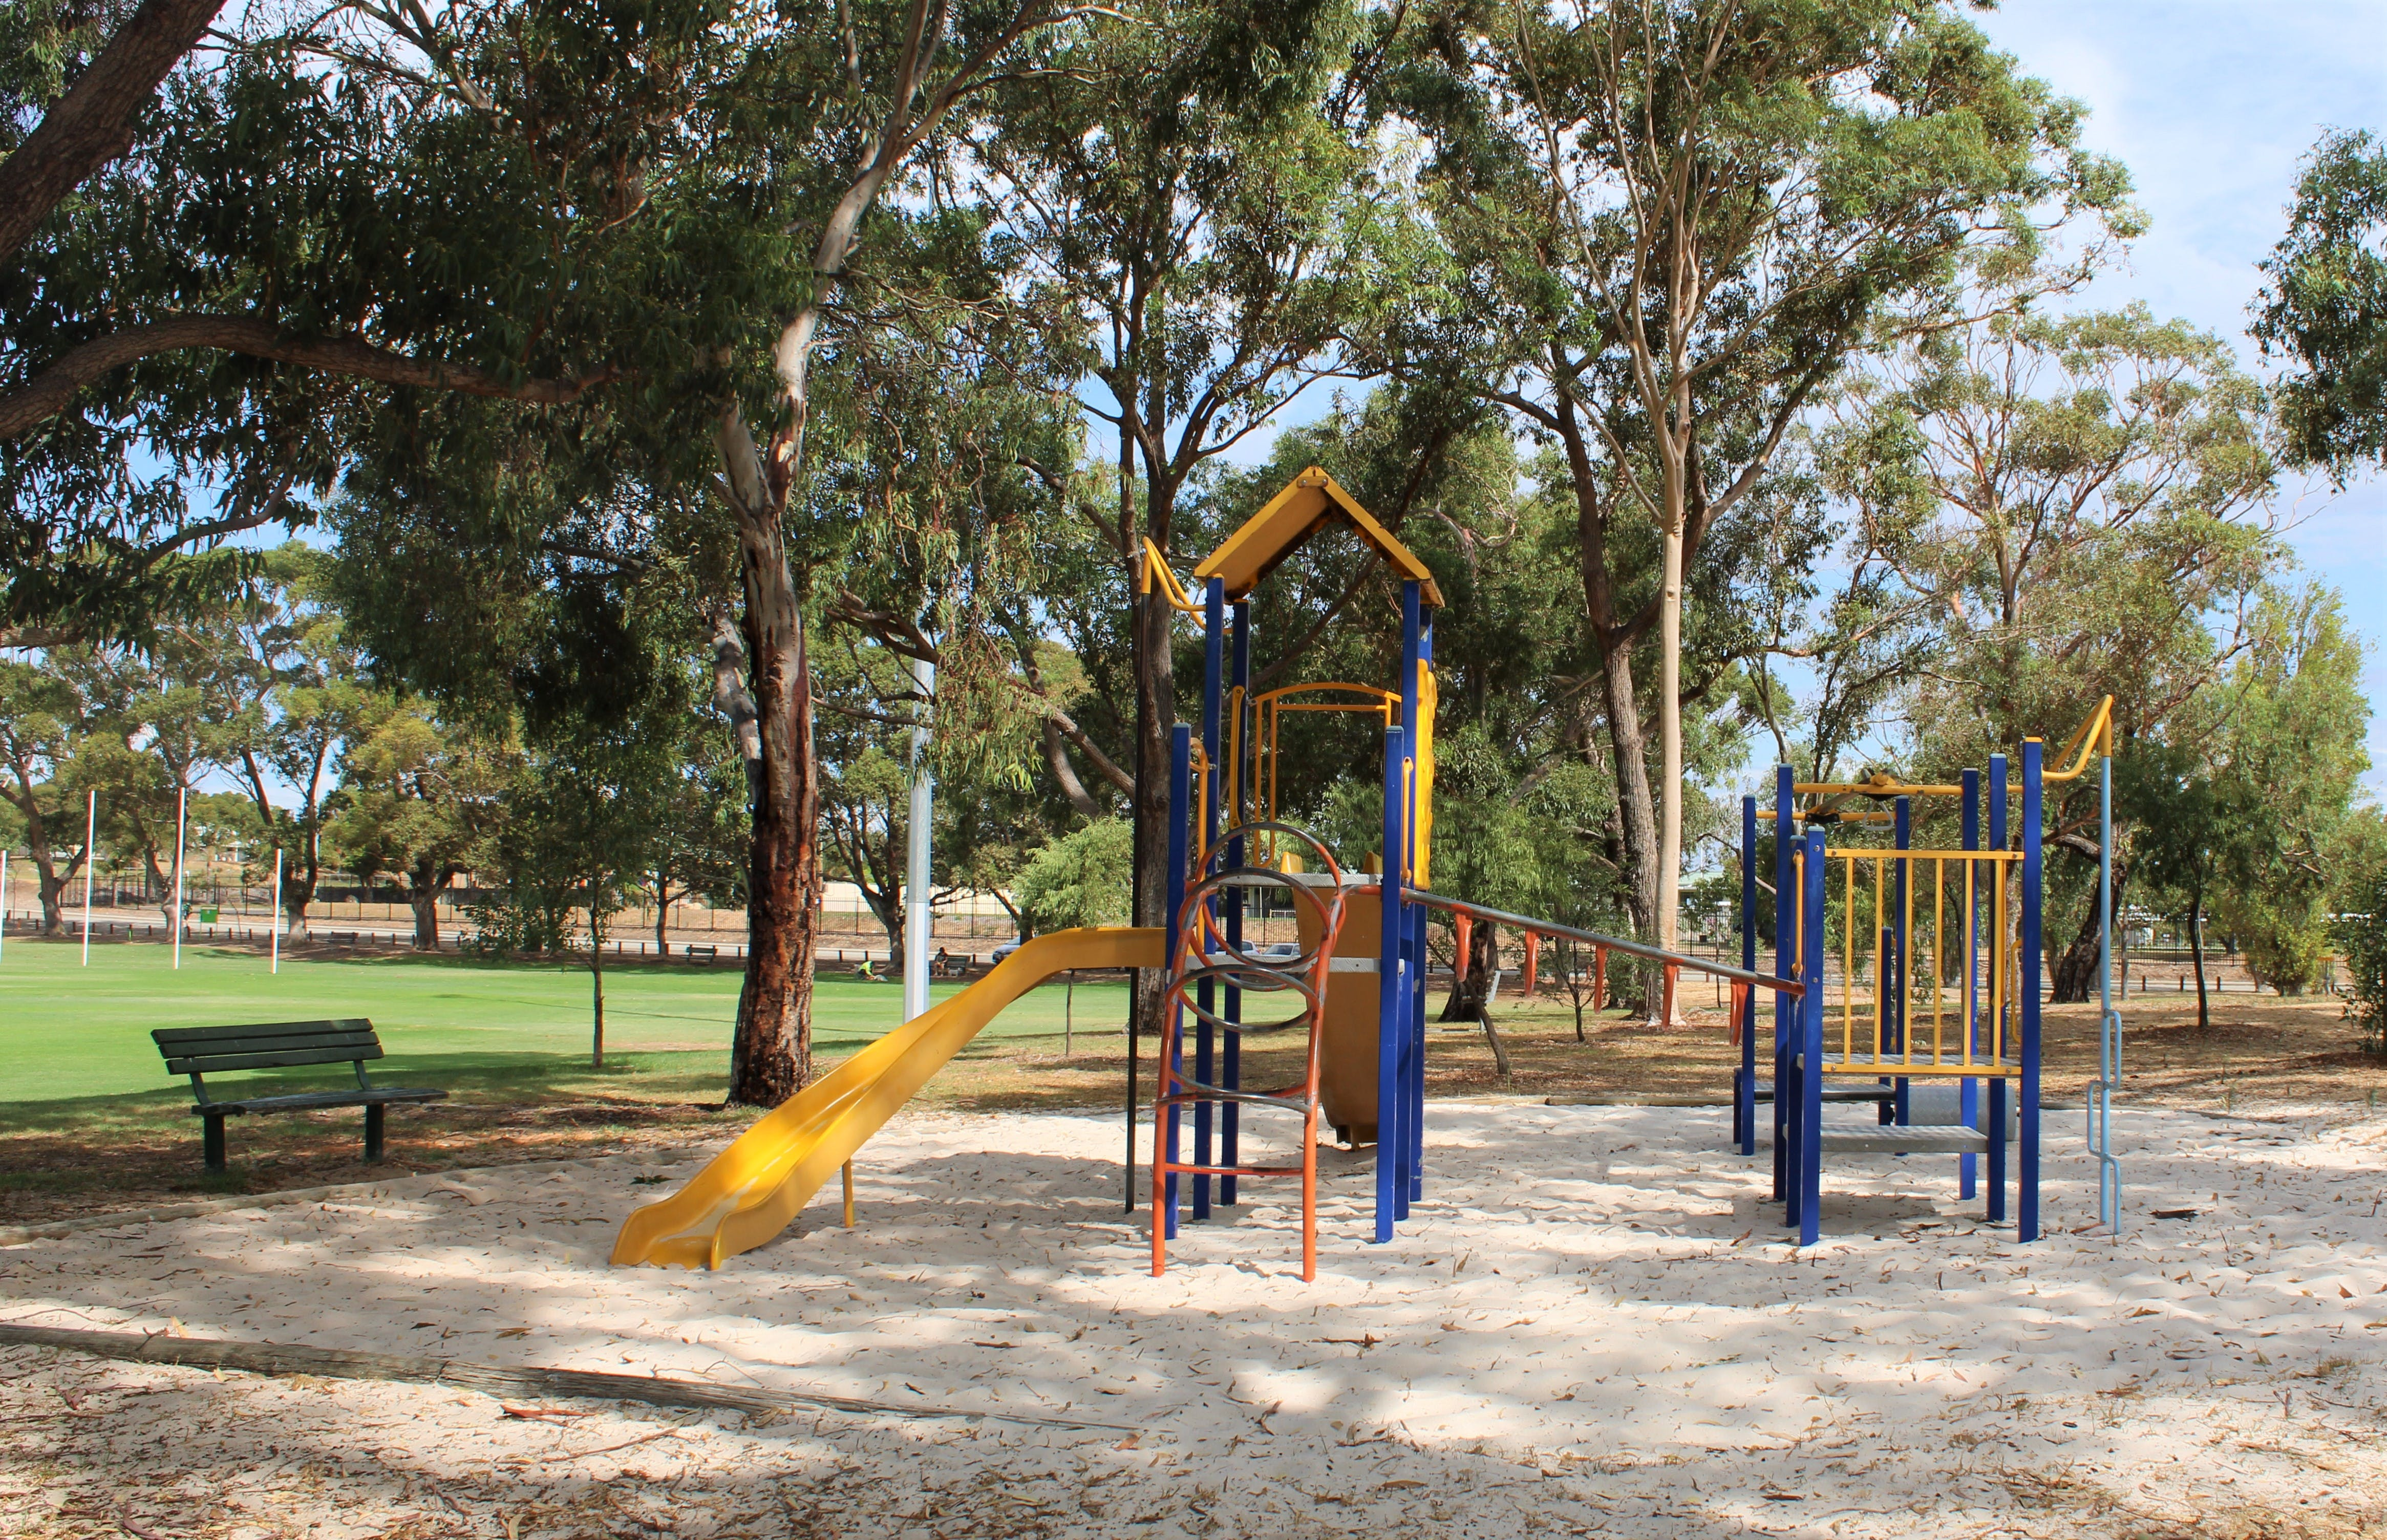 Dick Lawrence playspace - current